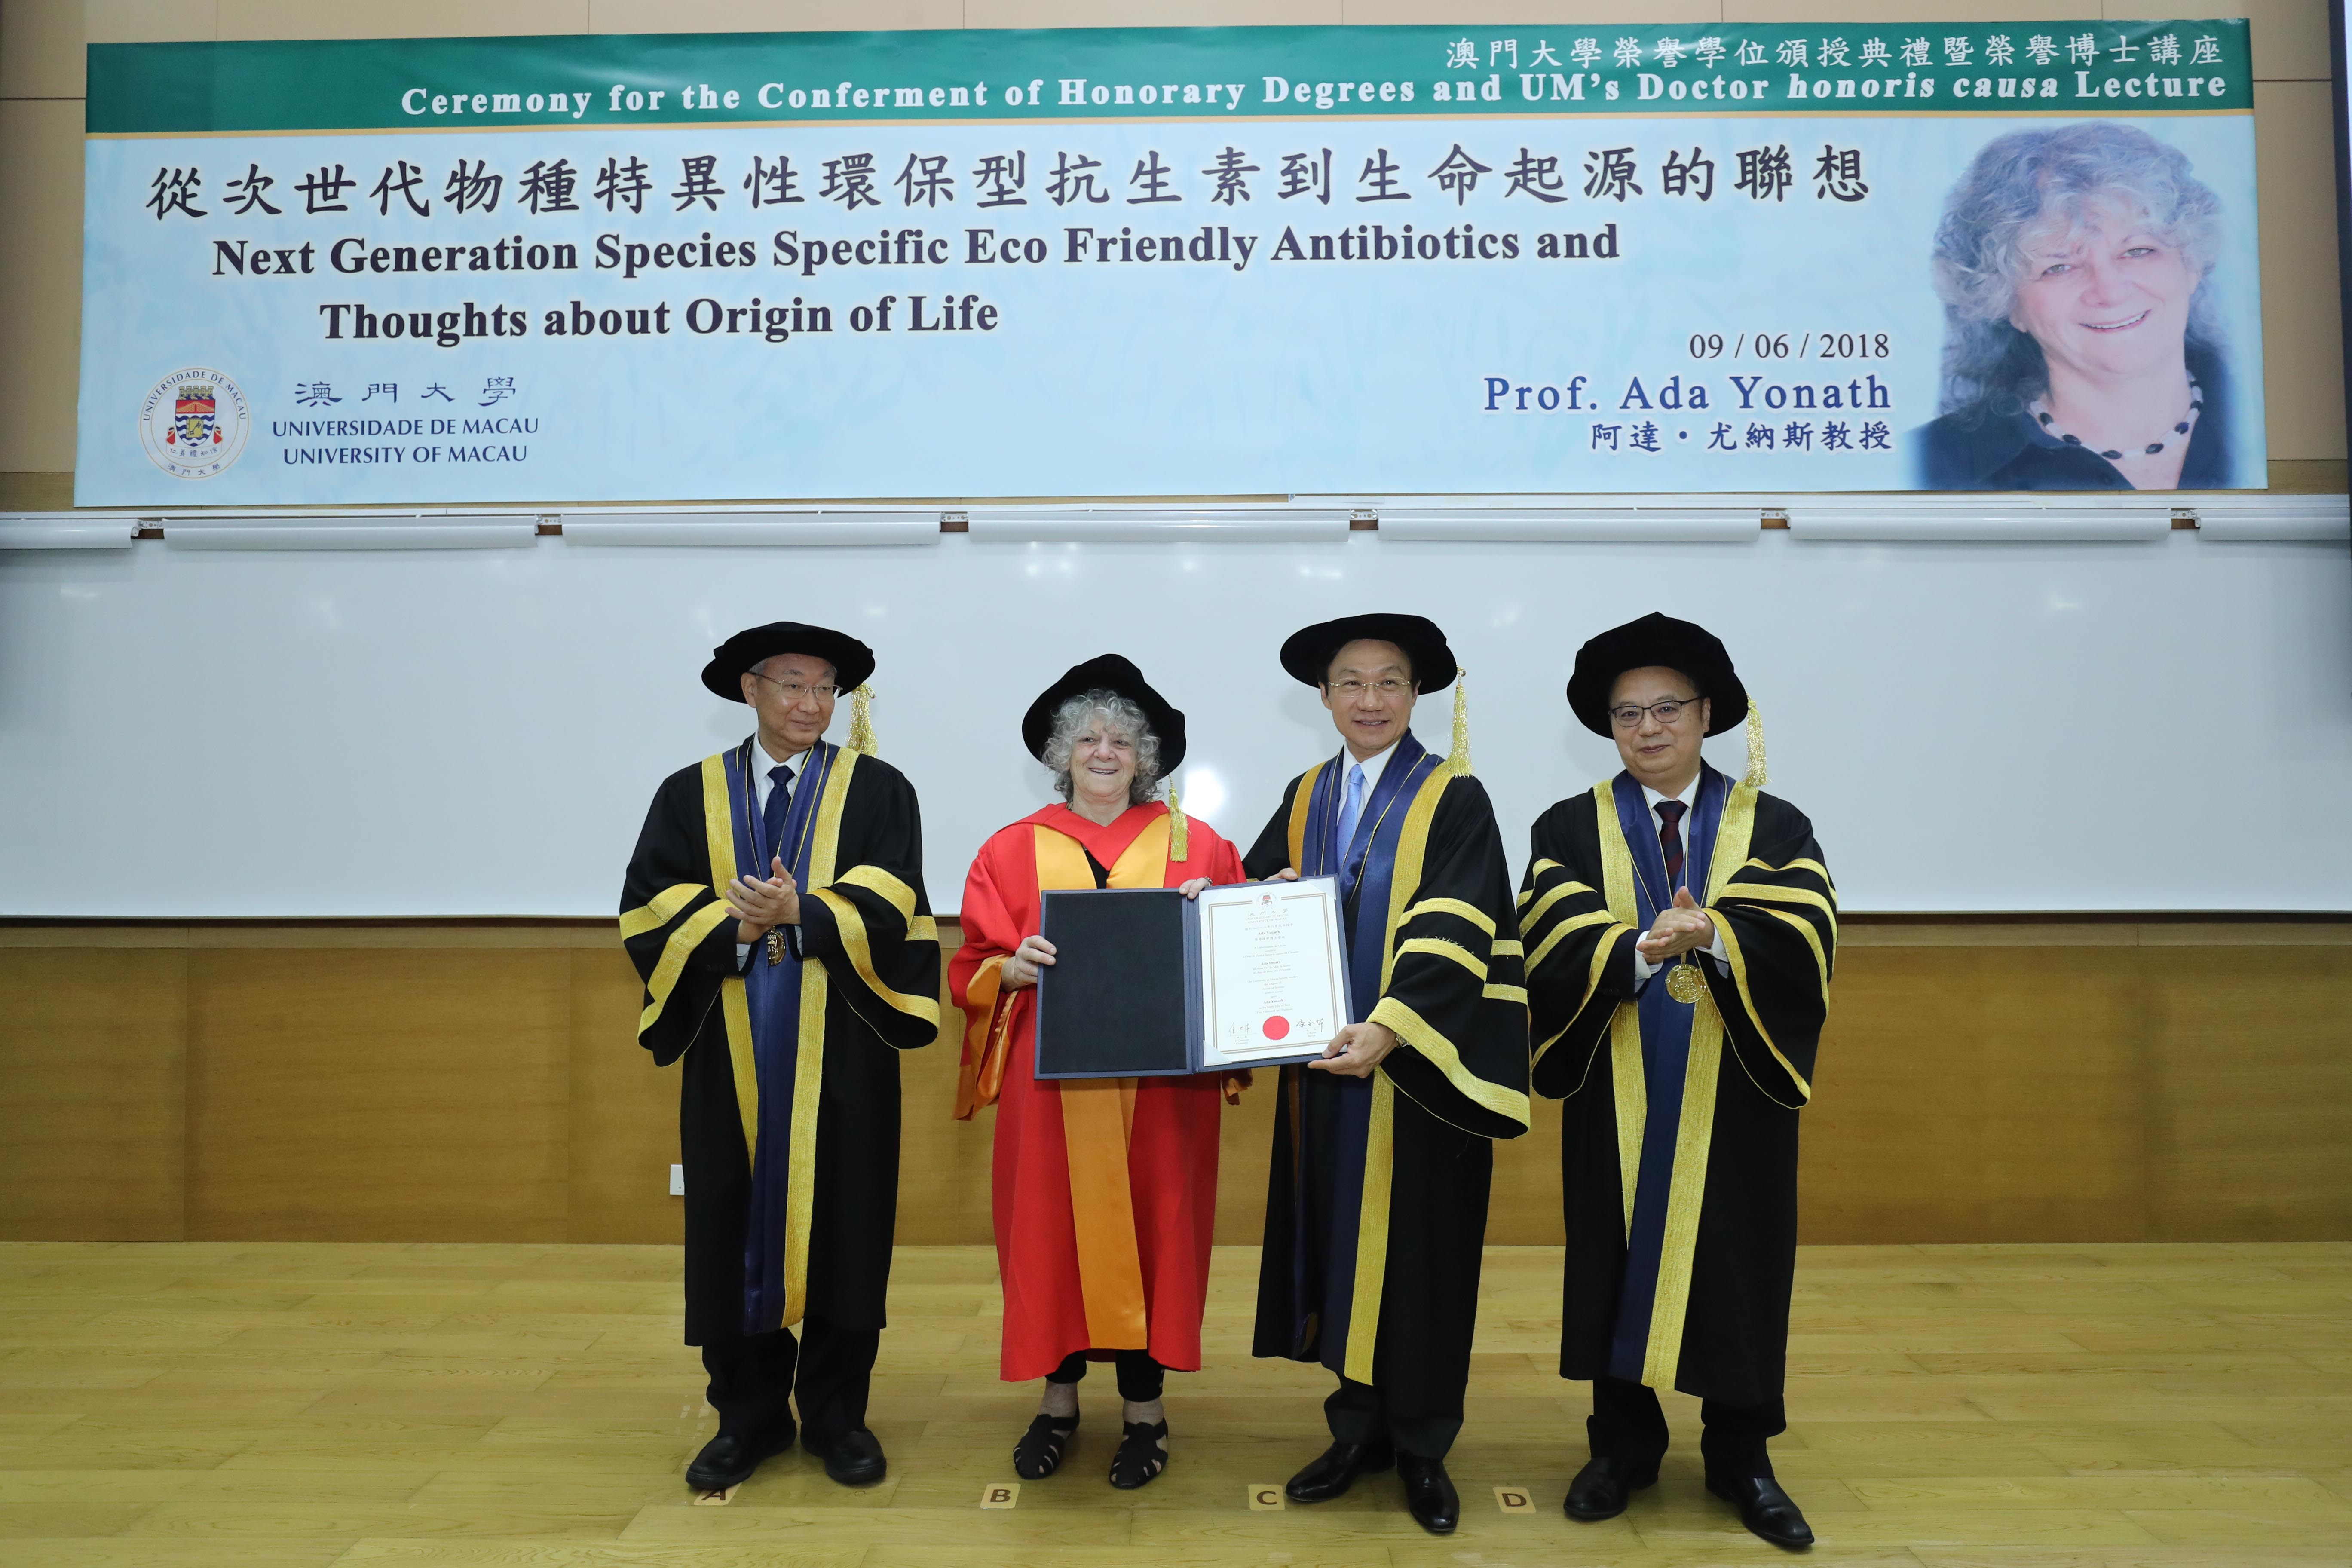 UM confers an honorary doctorate on Prof Ada Yonath